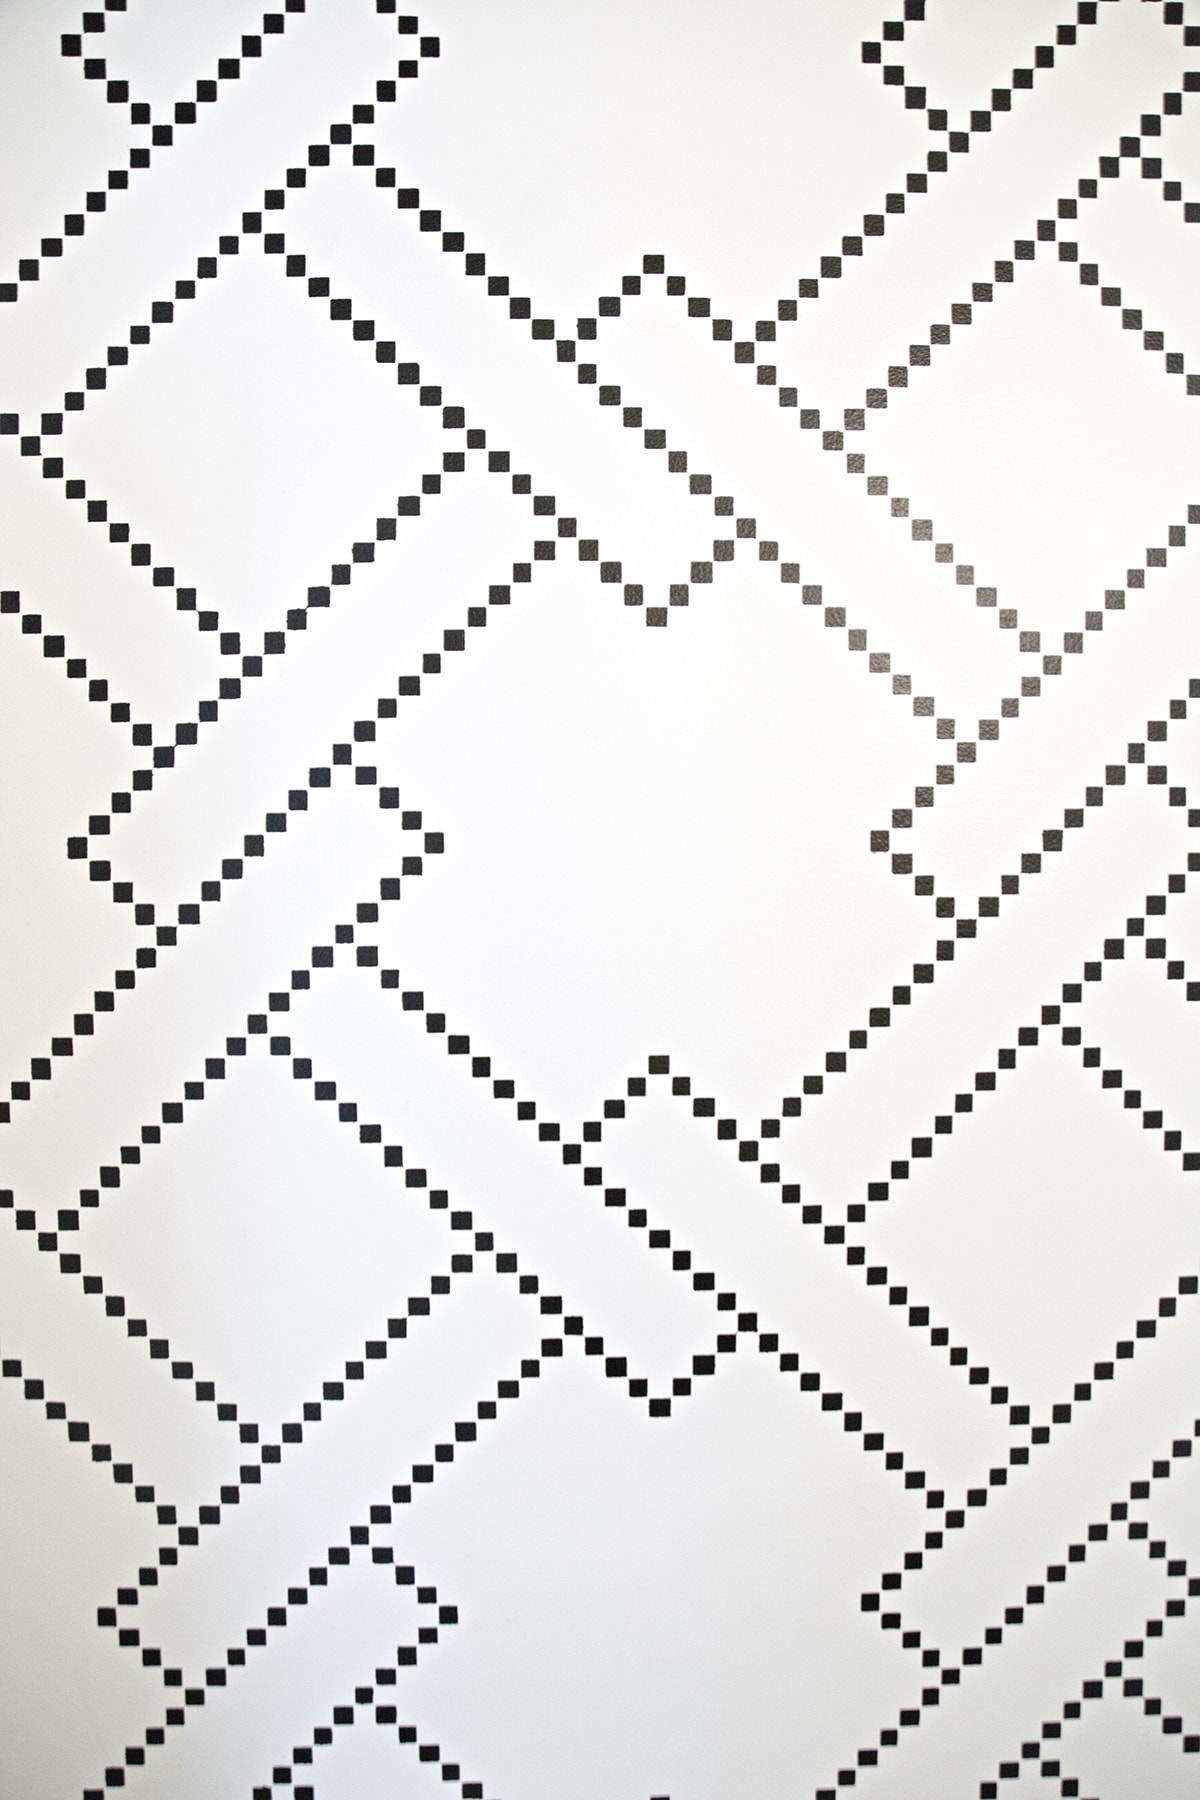 black and white tile mosaic stencil